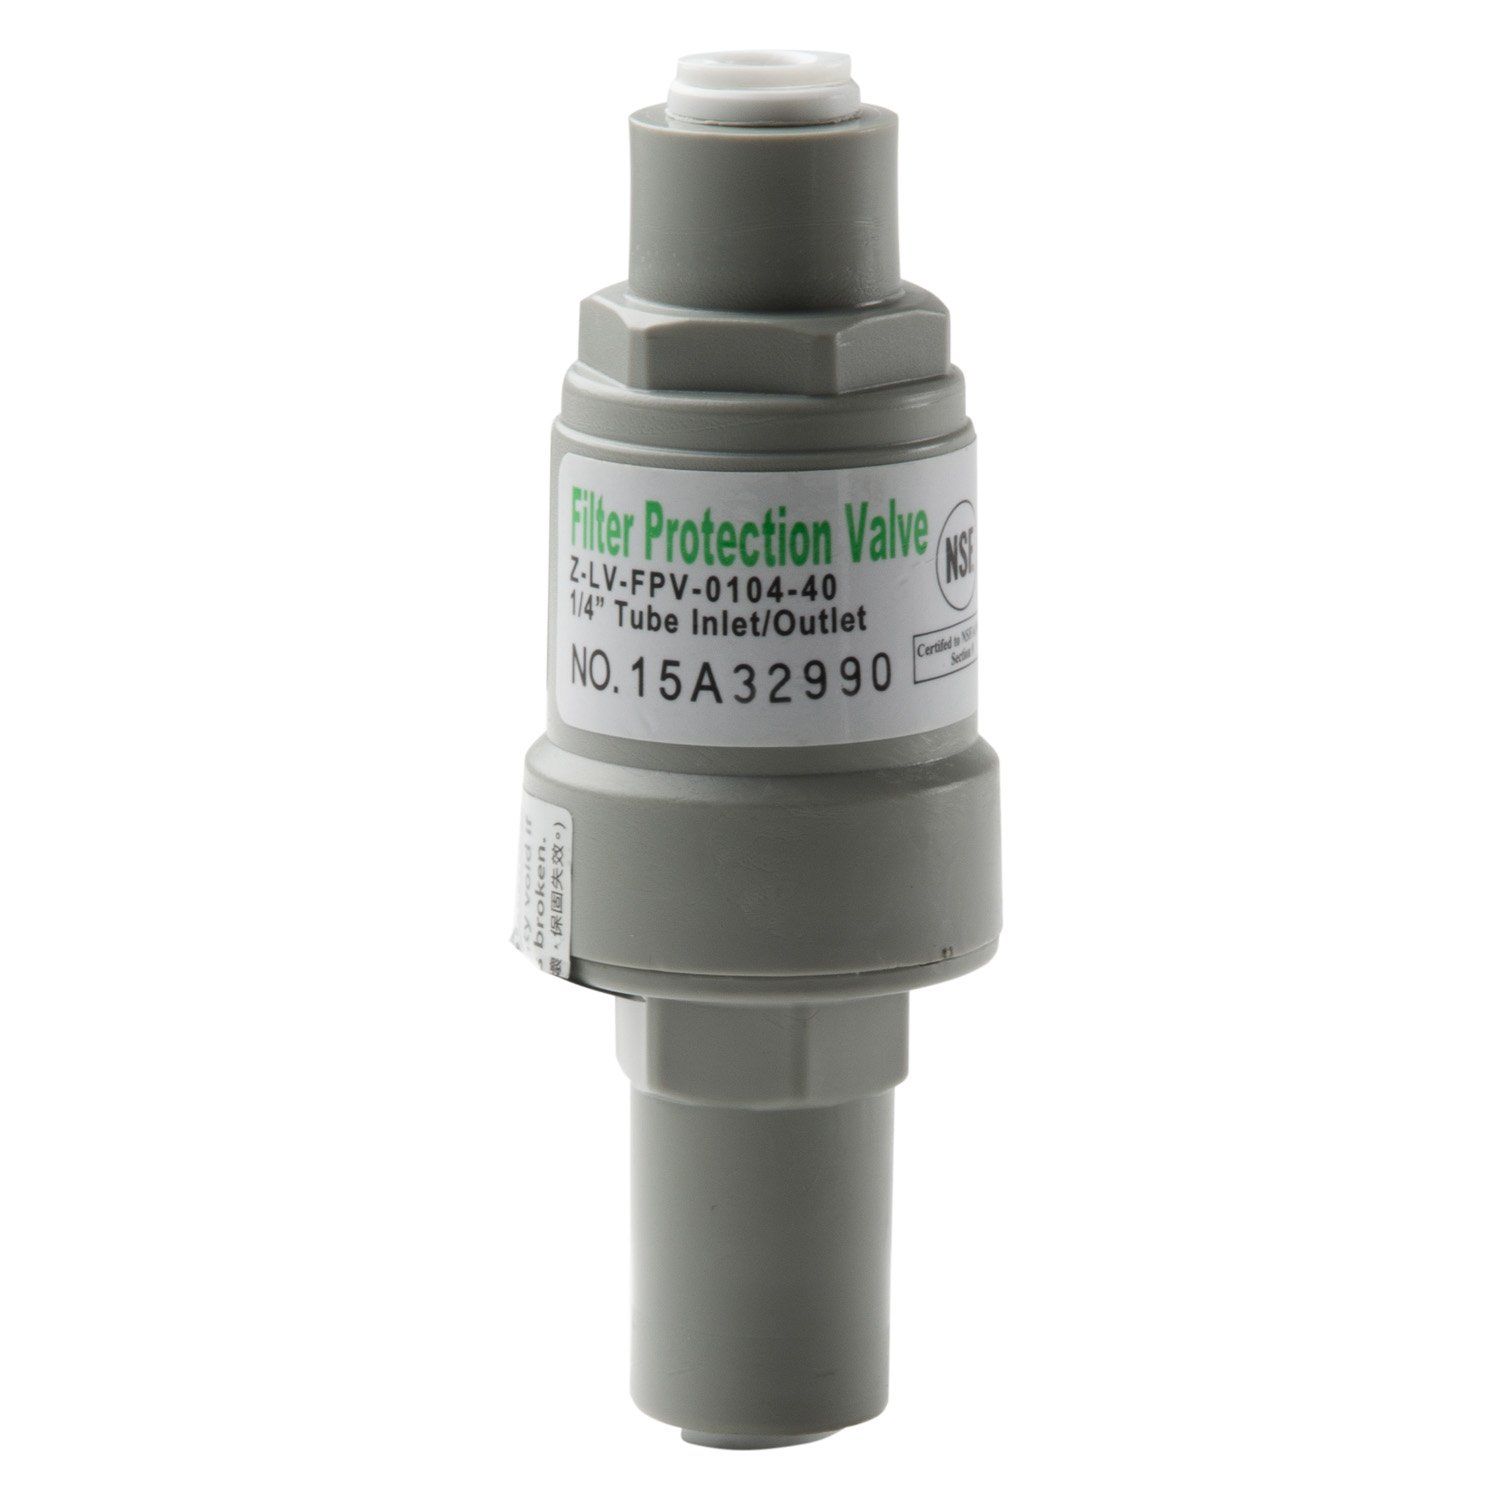 iSpring APR40 Pressure Regulator Filter Protection Valve with 1/4'' Quick Connect, 40 Psi white